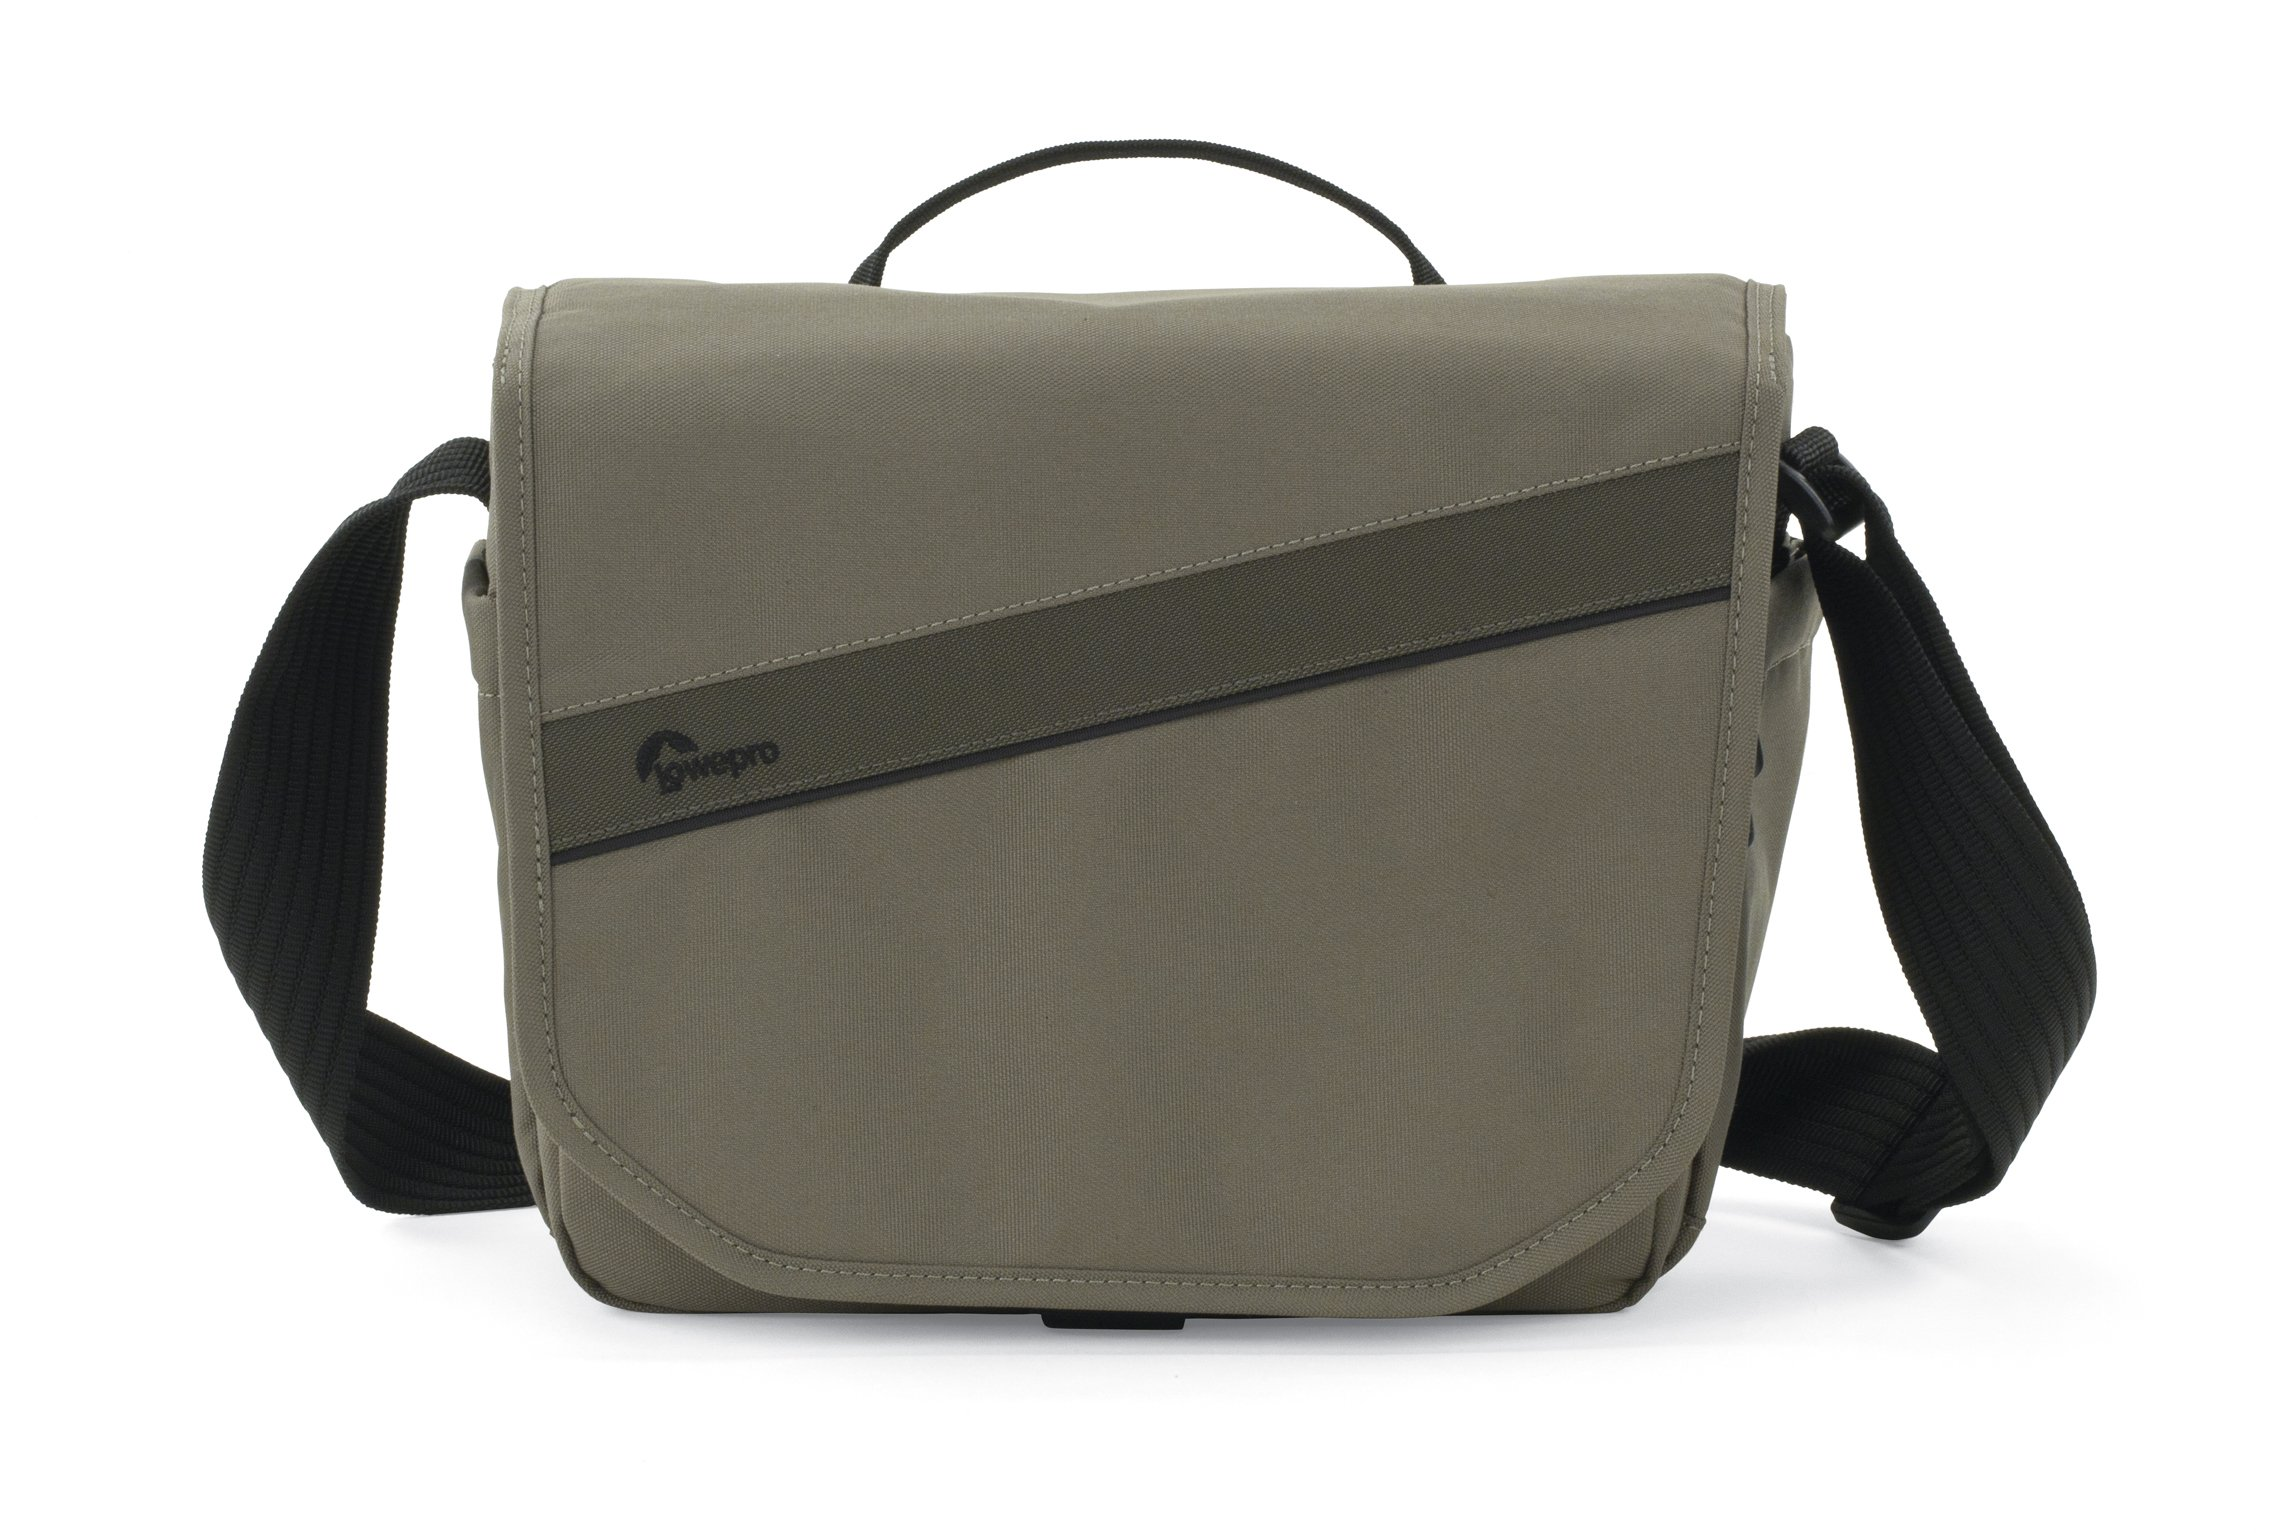 Lowepro Event Messenger 150 Camera Shoulder Bag - Lightweight Cross Body Camera Bag For Compact, DSLR, or Mirrorless